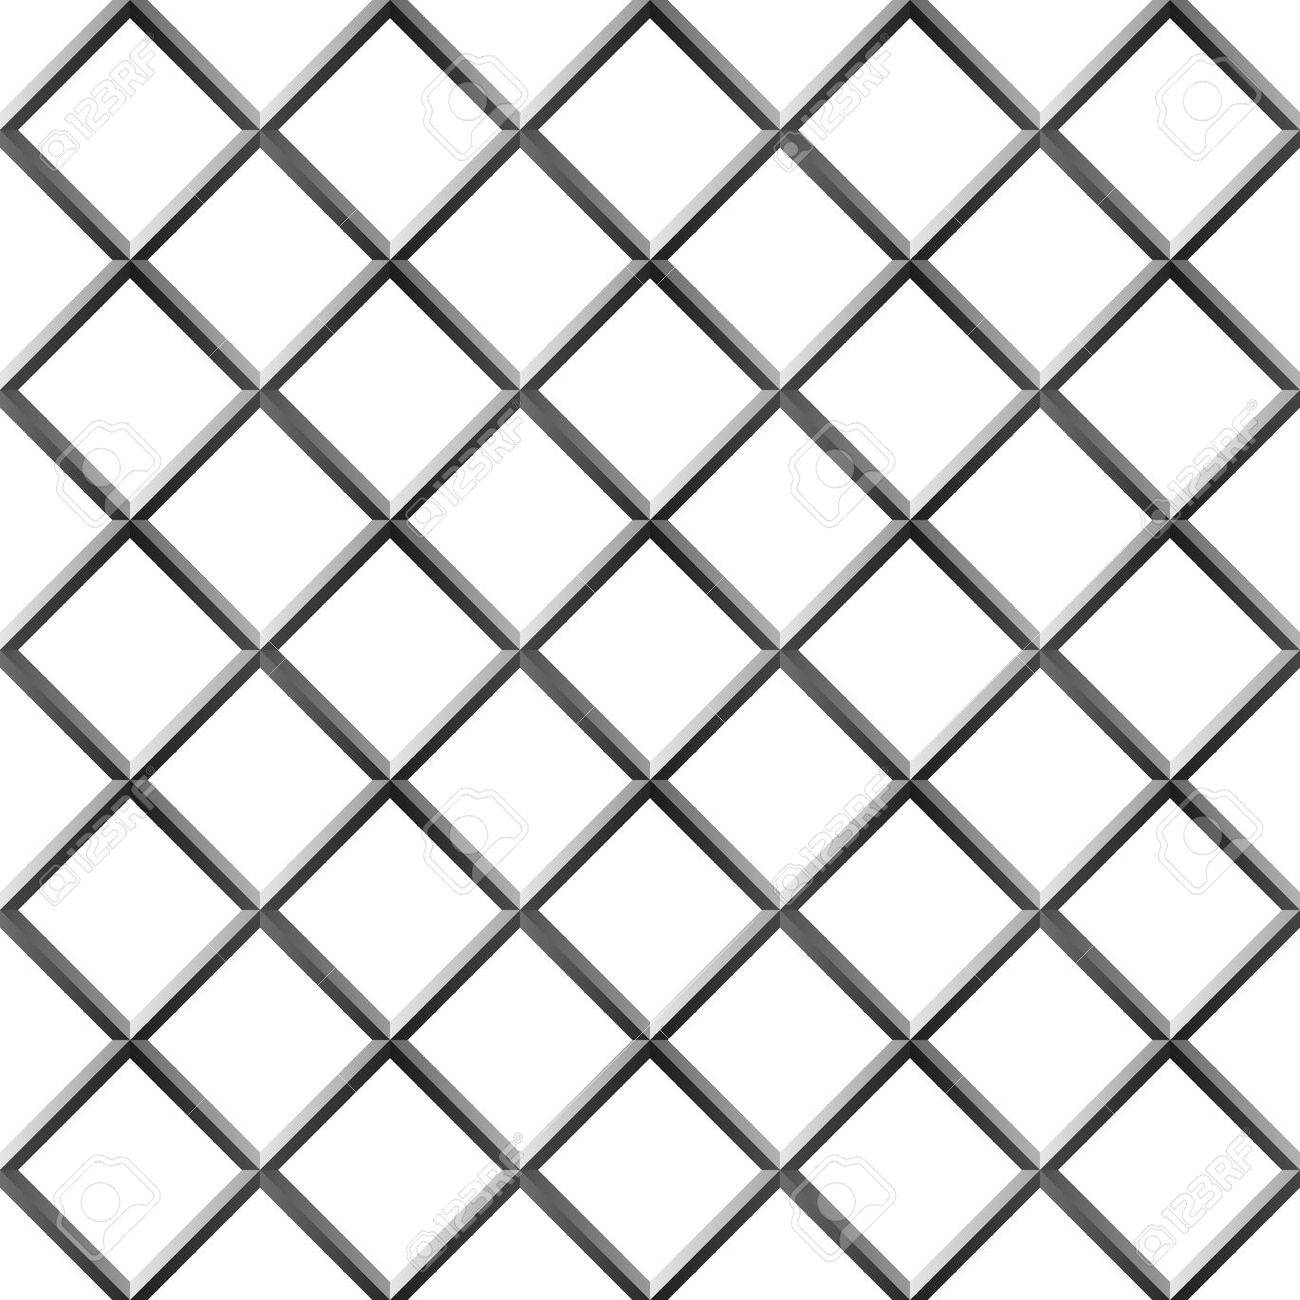 1300x1300 Seamless Metal Diamond Shape Grill Isolated On White Royalty Free